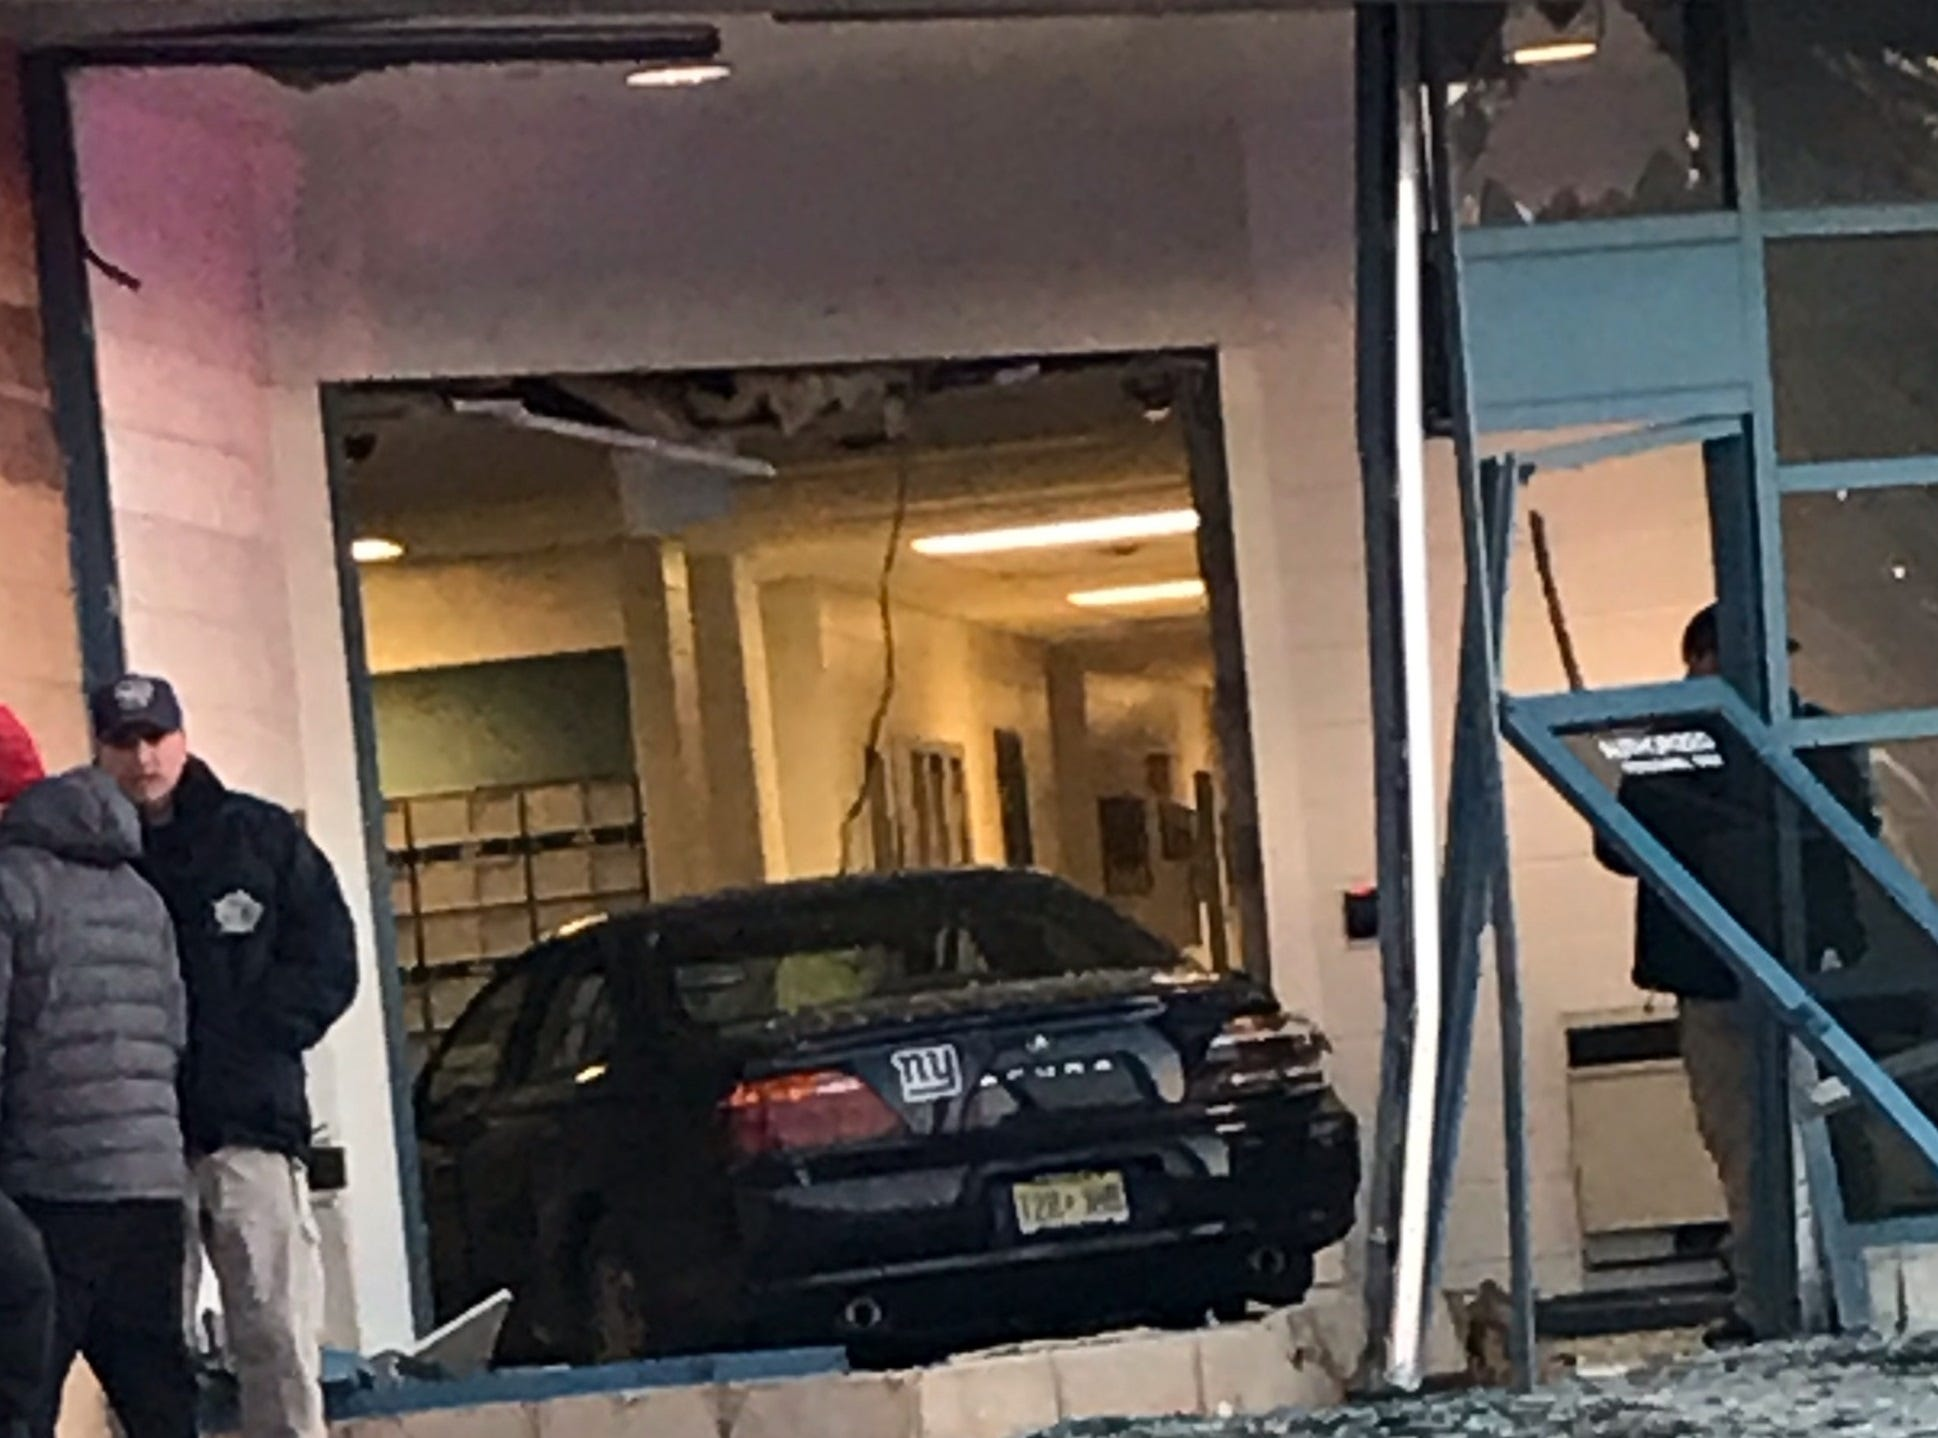 A black sedan crashed into the administrative section of the Bergen County Jail in Hackensack Jan. 11, 2019.